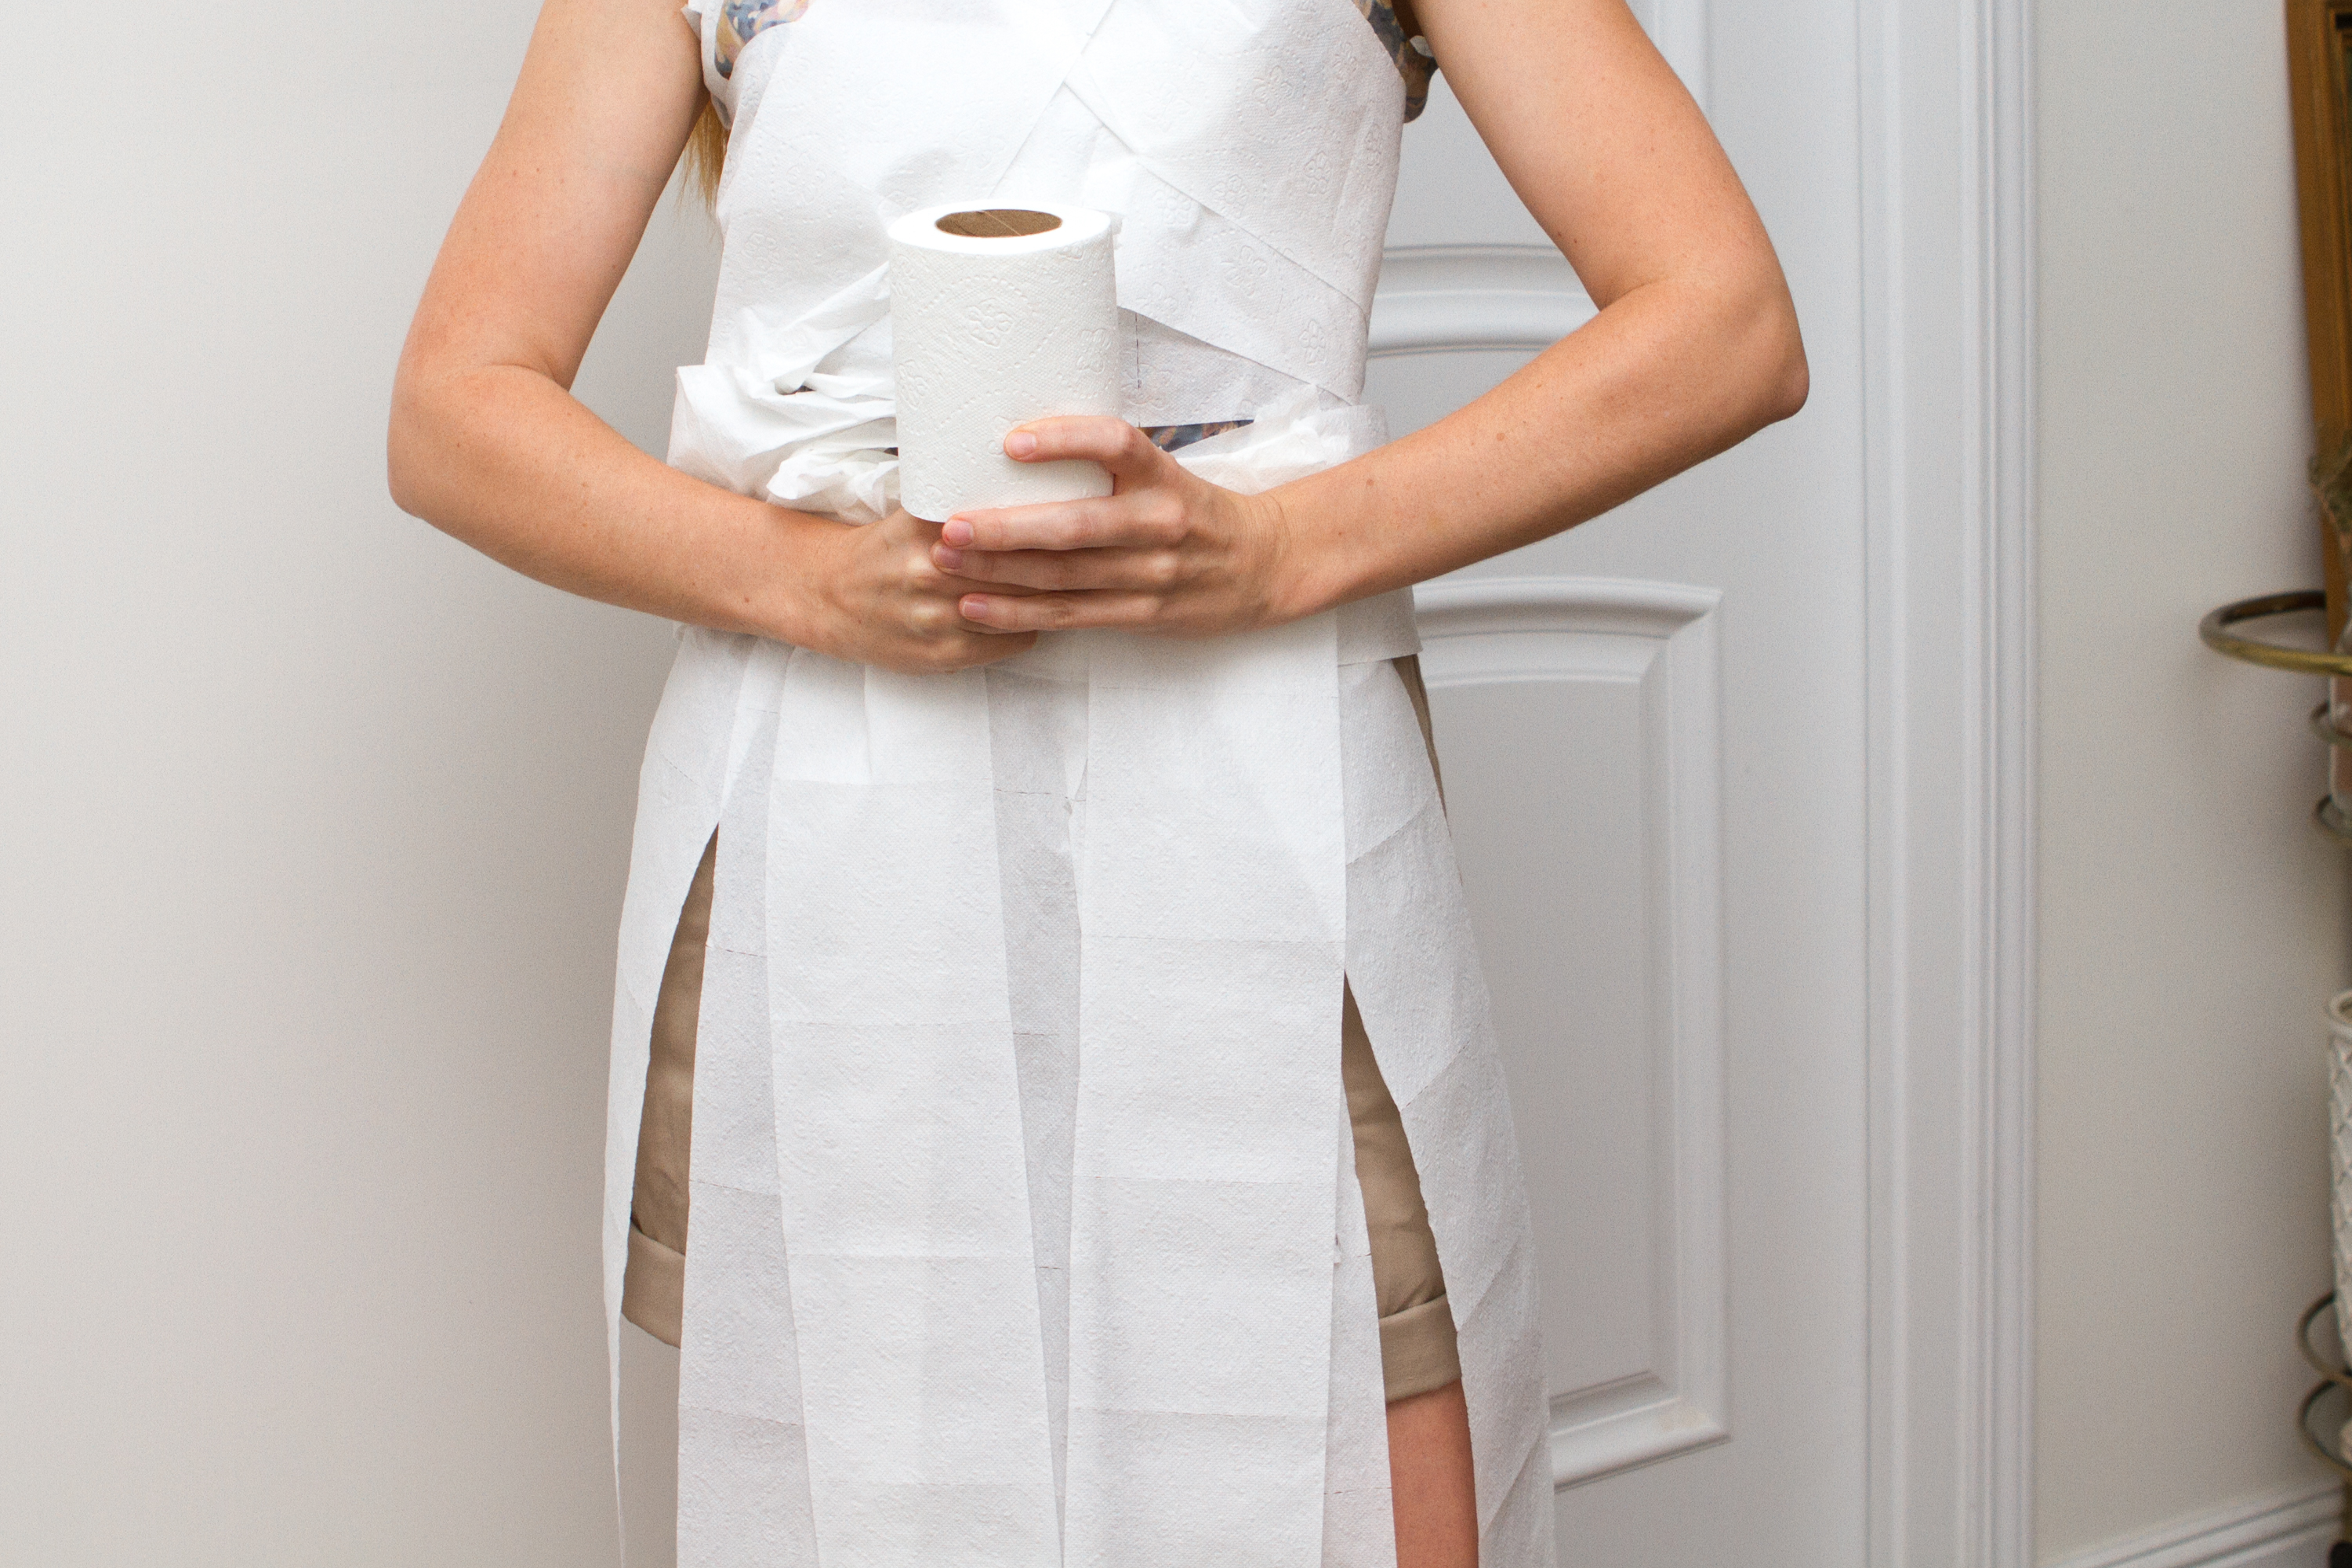 How To Play The Toilet Paper Bride Game At A Bridal Shower